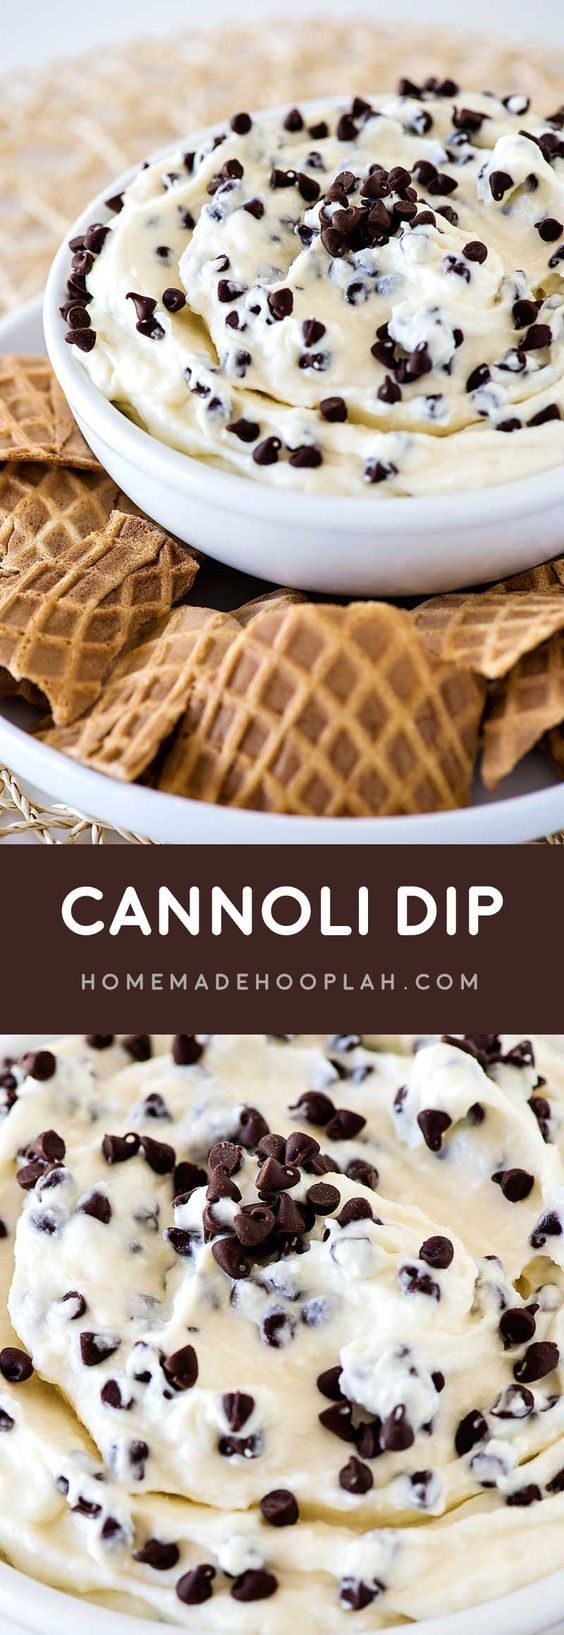 Cannoli Dip! An easy cannoli dip (that doesn't taste like cream cheese!) mixed with delicious mini chocolate chips and served with broken waffle cones for dipping. | HomemadeHooplah.com: